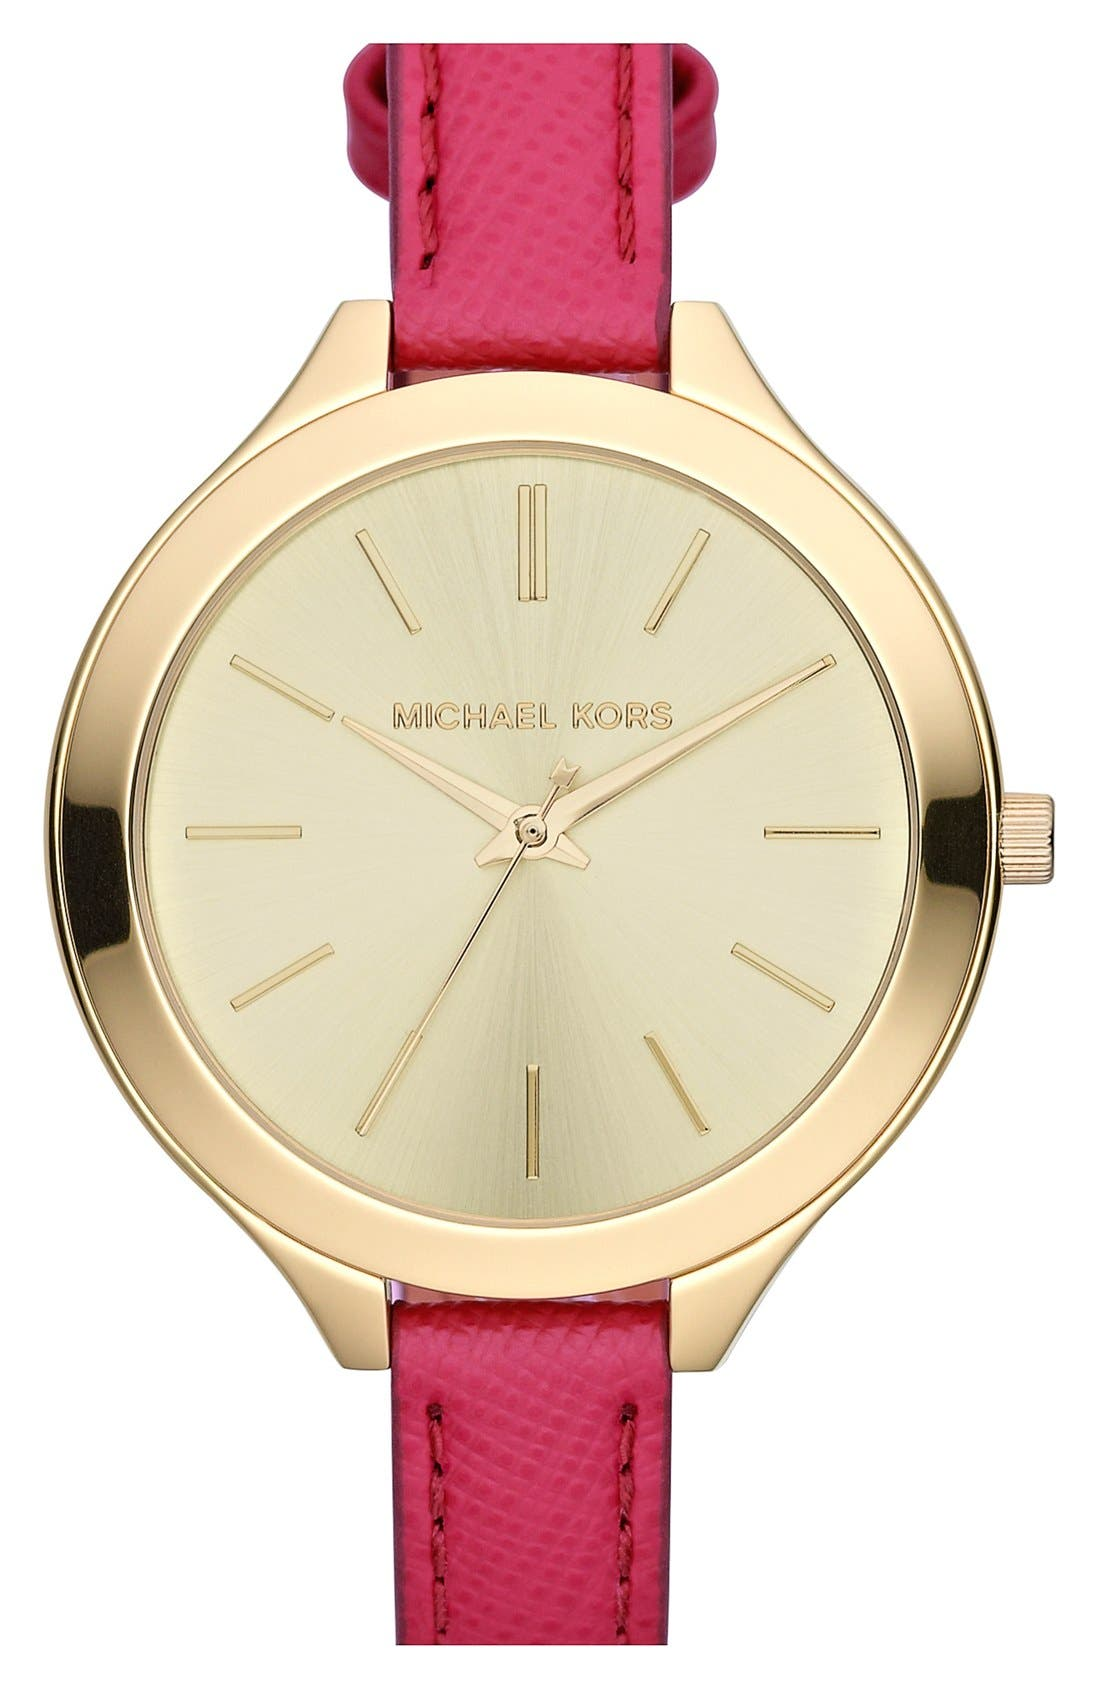 Main Image - Michael Kors 'Slim Runway' Leather Strap Watch, 42mm